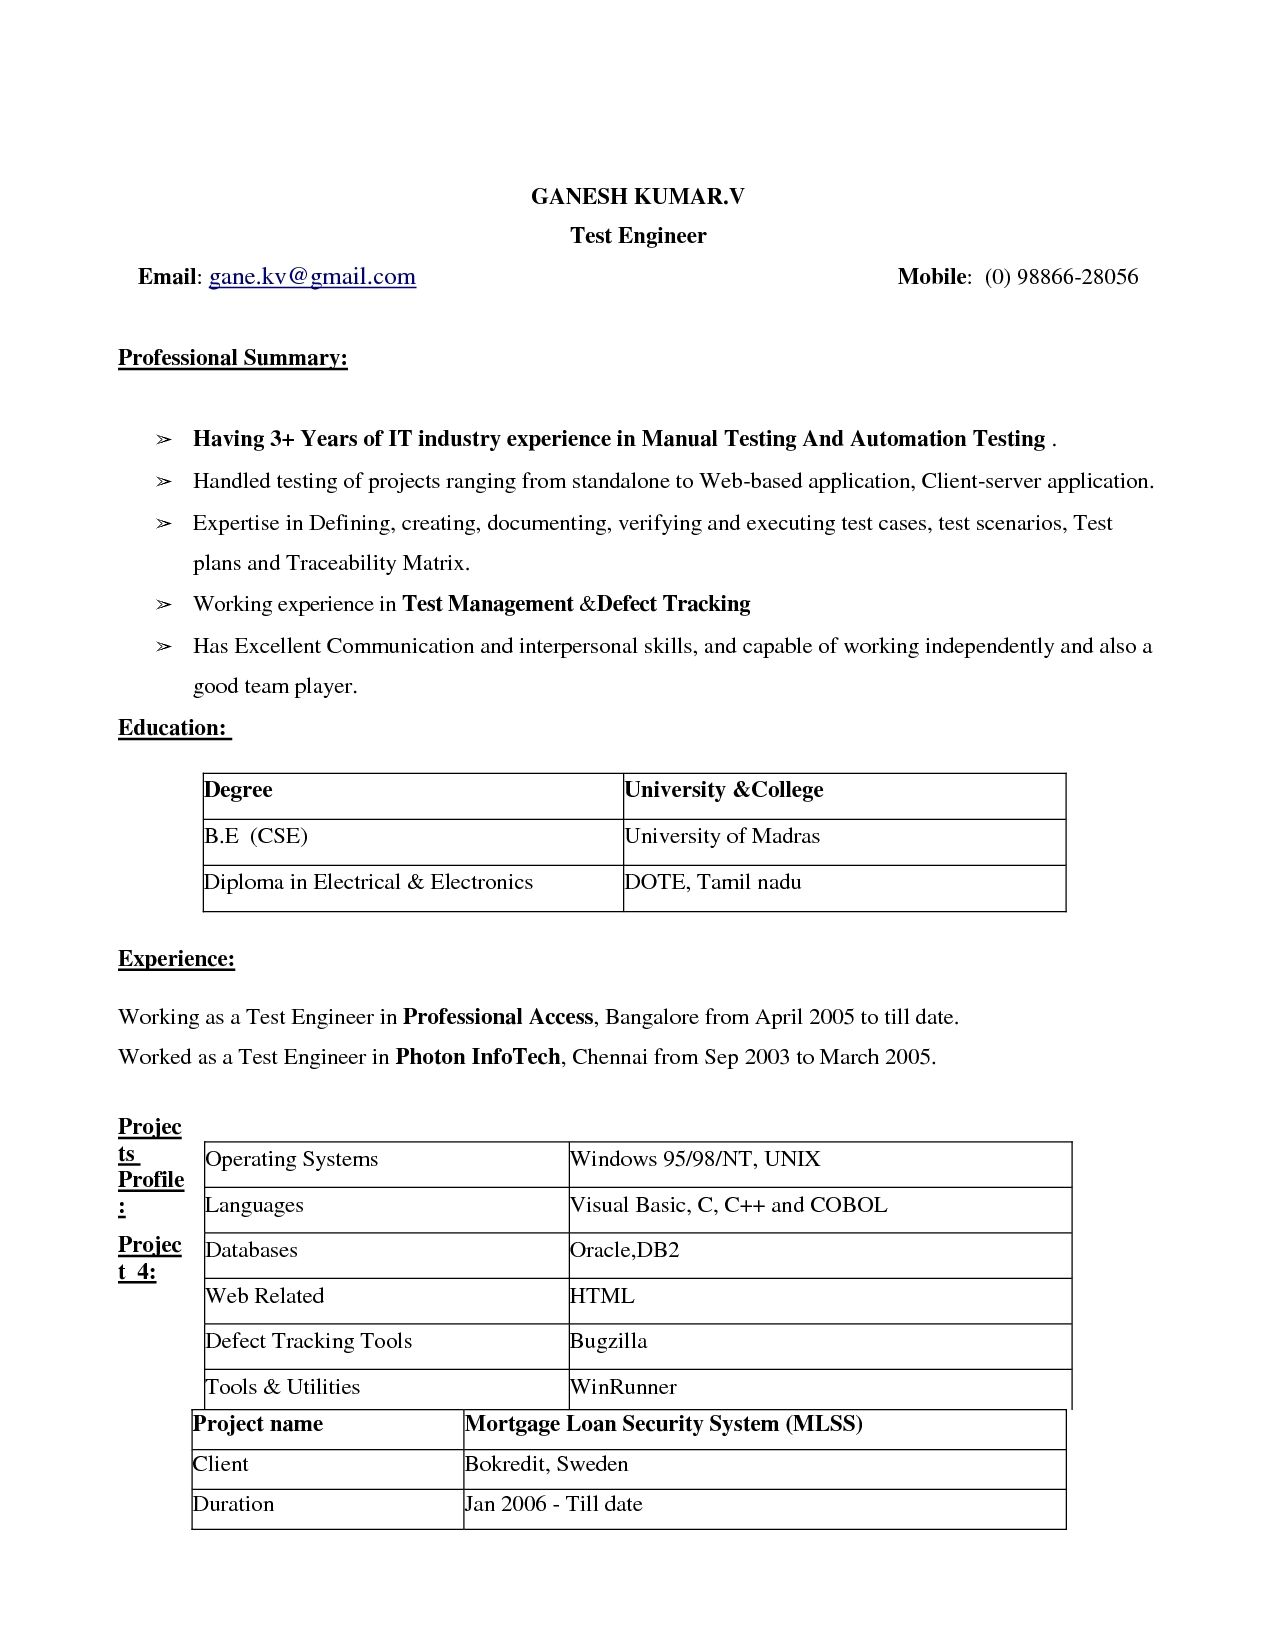 Resume Formats In Ms Word Eaaae Best Ms Word Resume Format